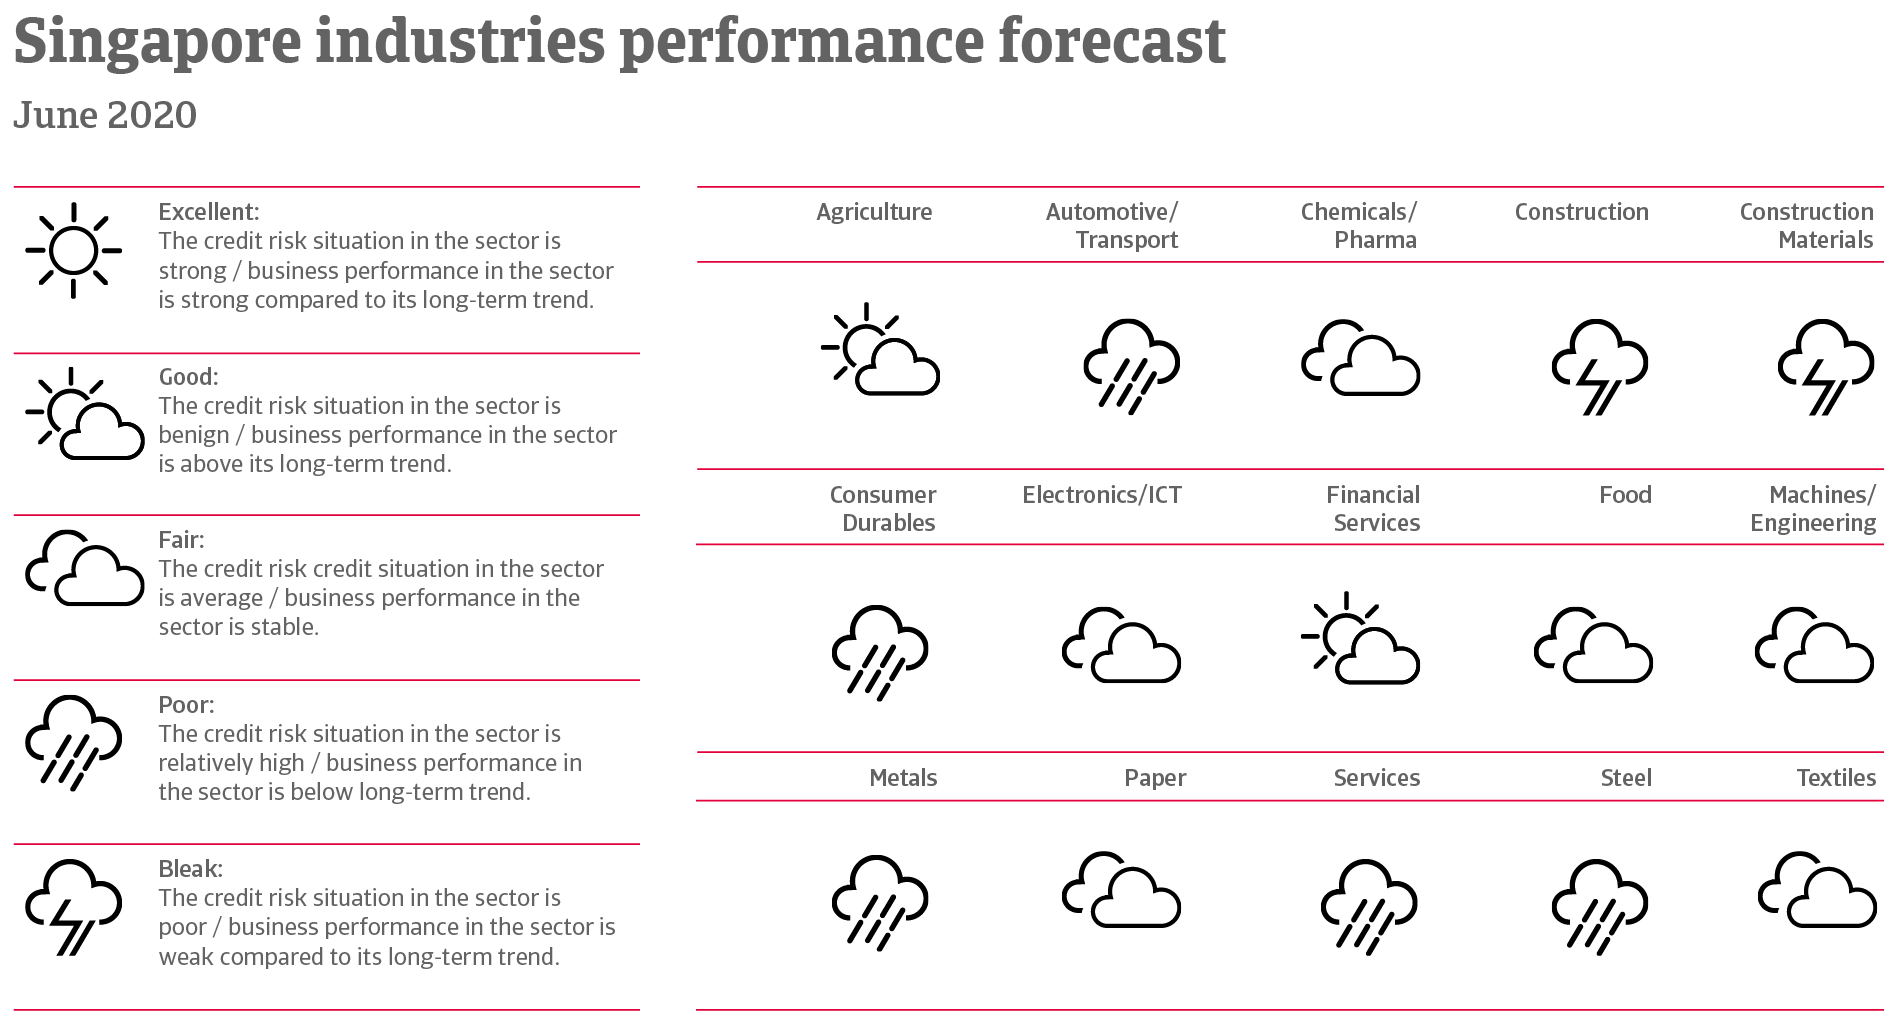 Performance forecast of Singaporean industries